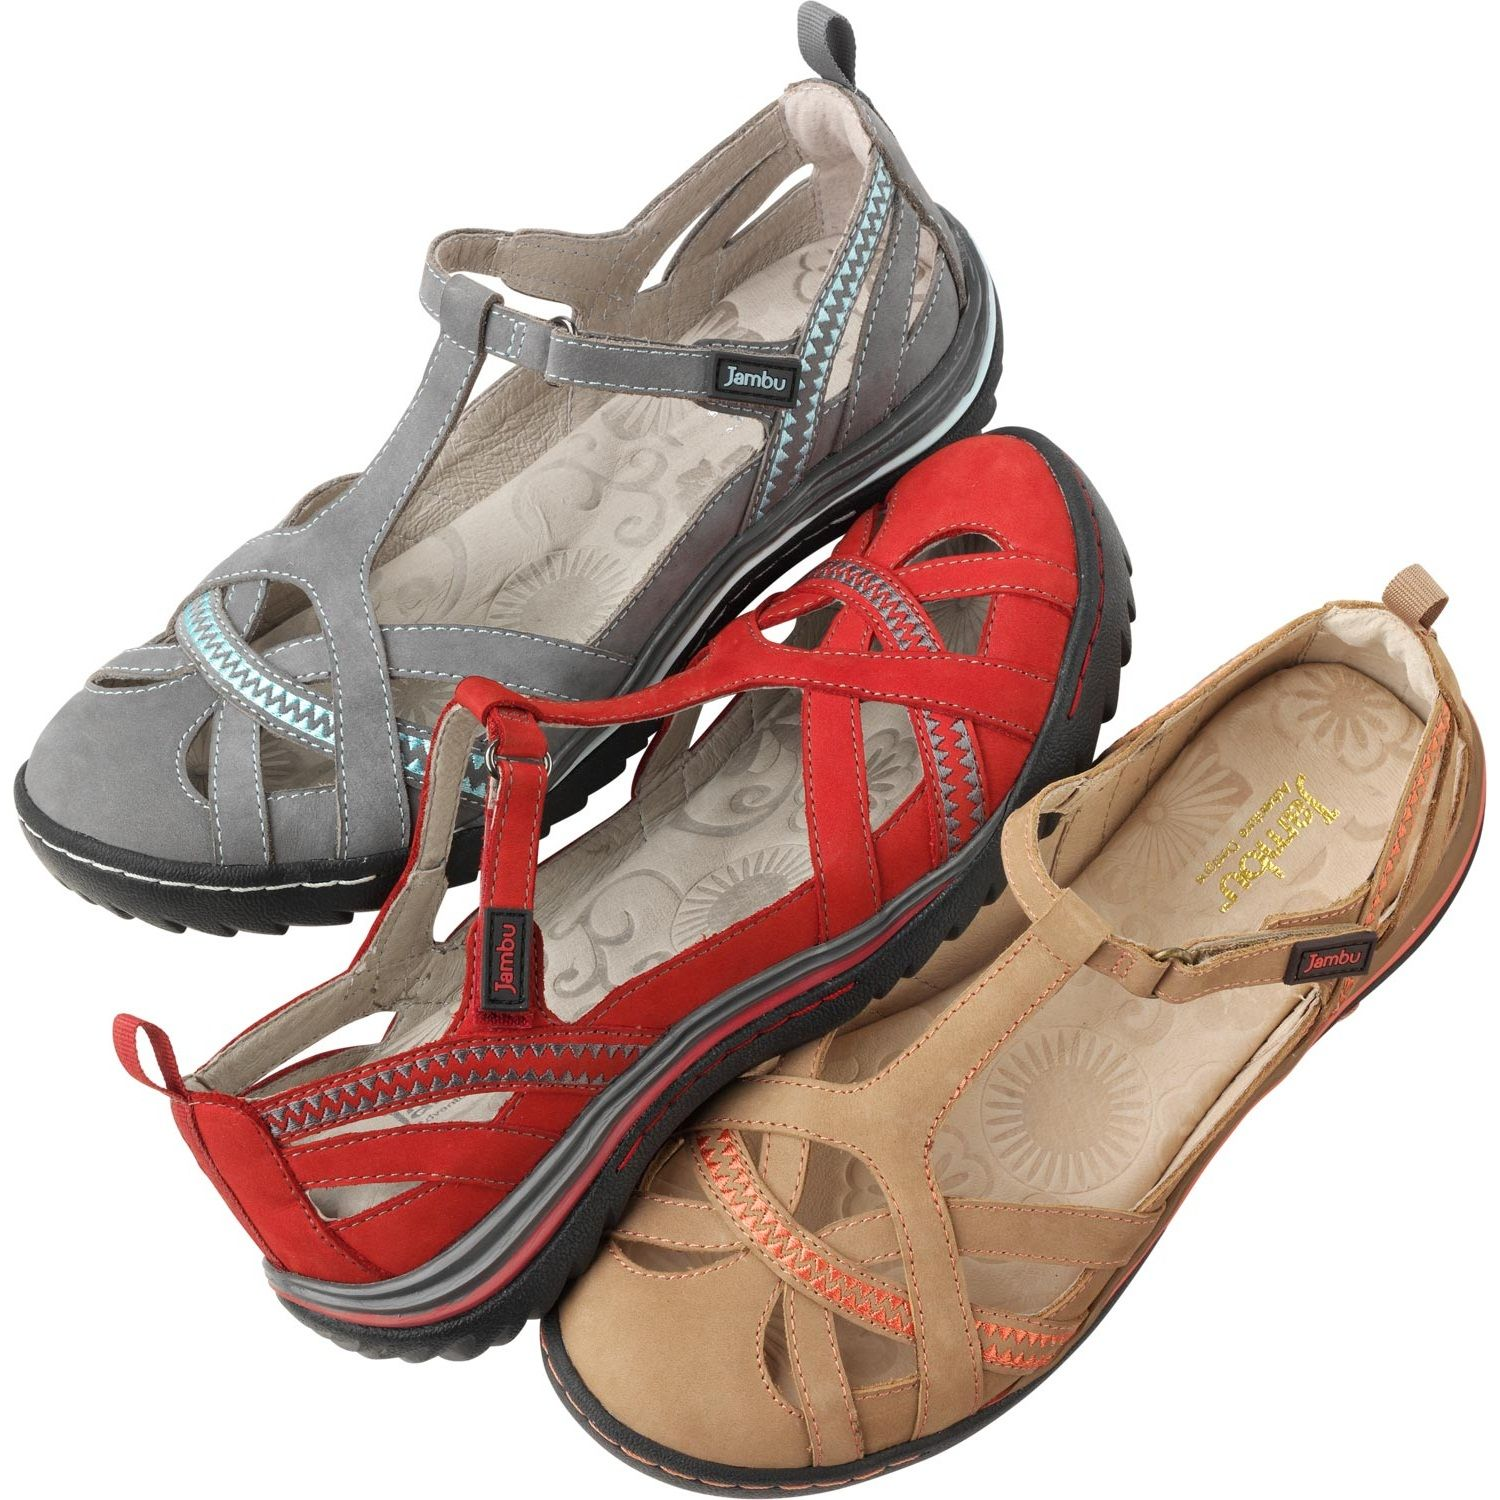 Womens sandals with arch support - Part Breezy Sandal Part Supportive Shoe The Women S Jambu Charley Sandal Gives You The